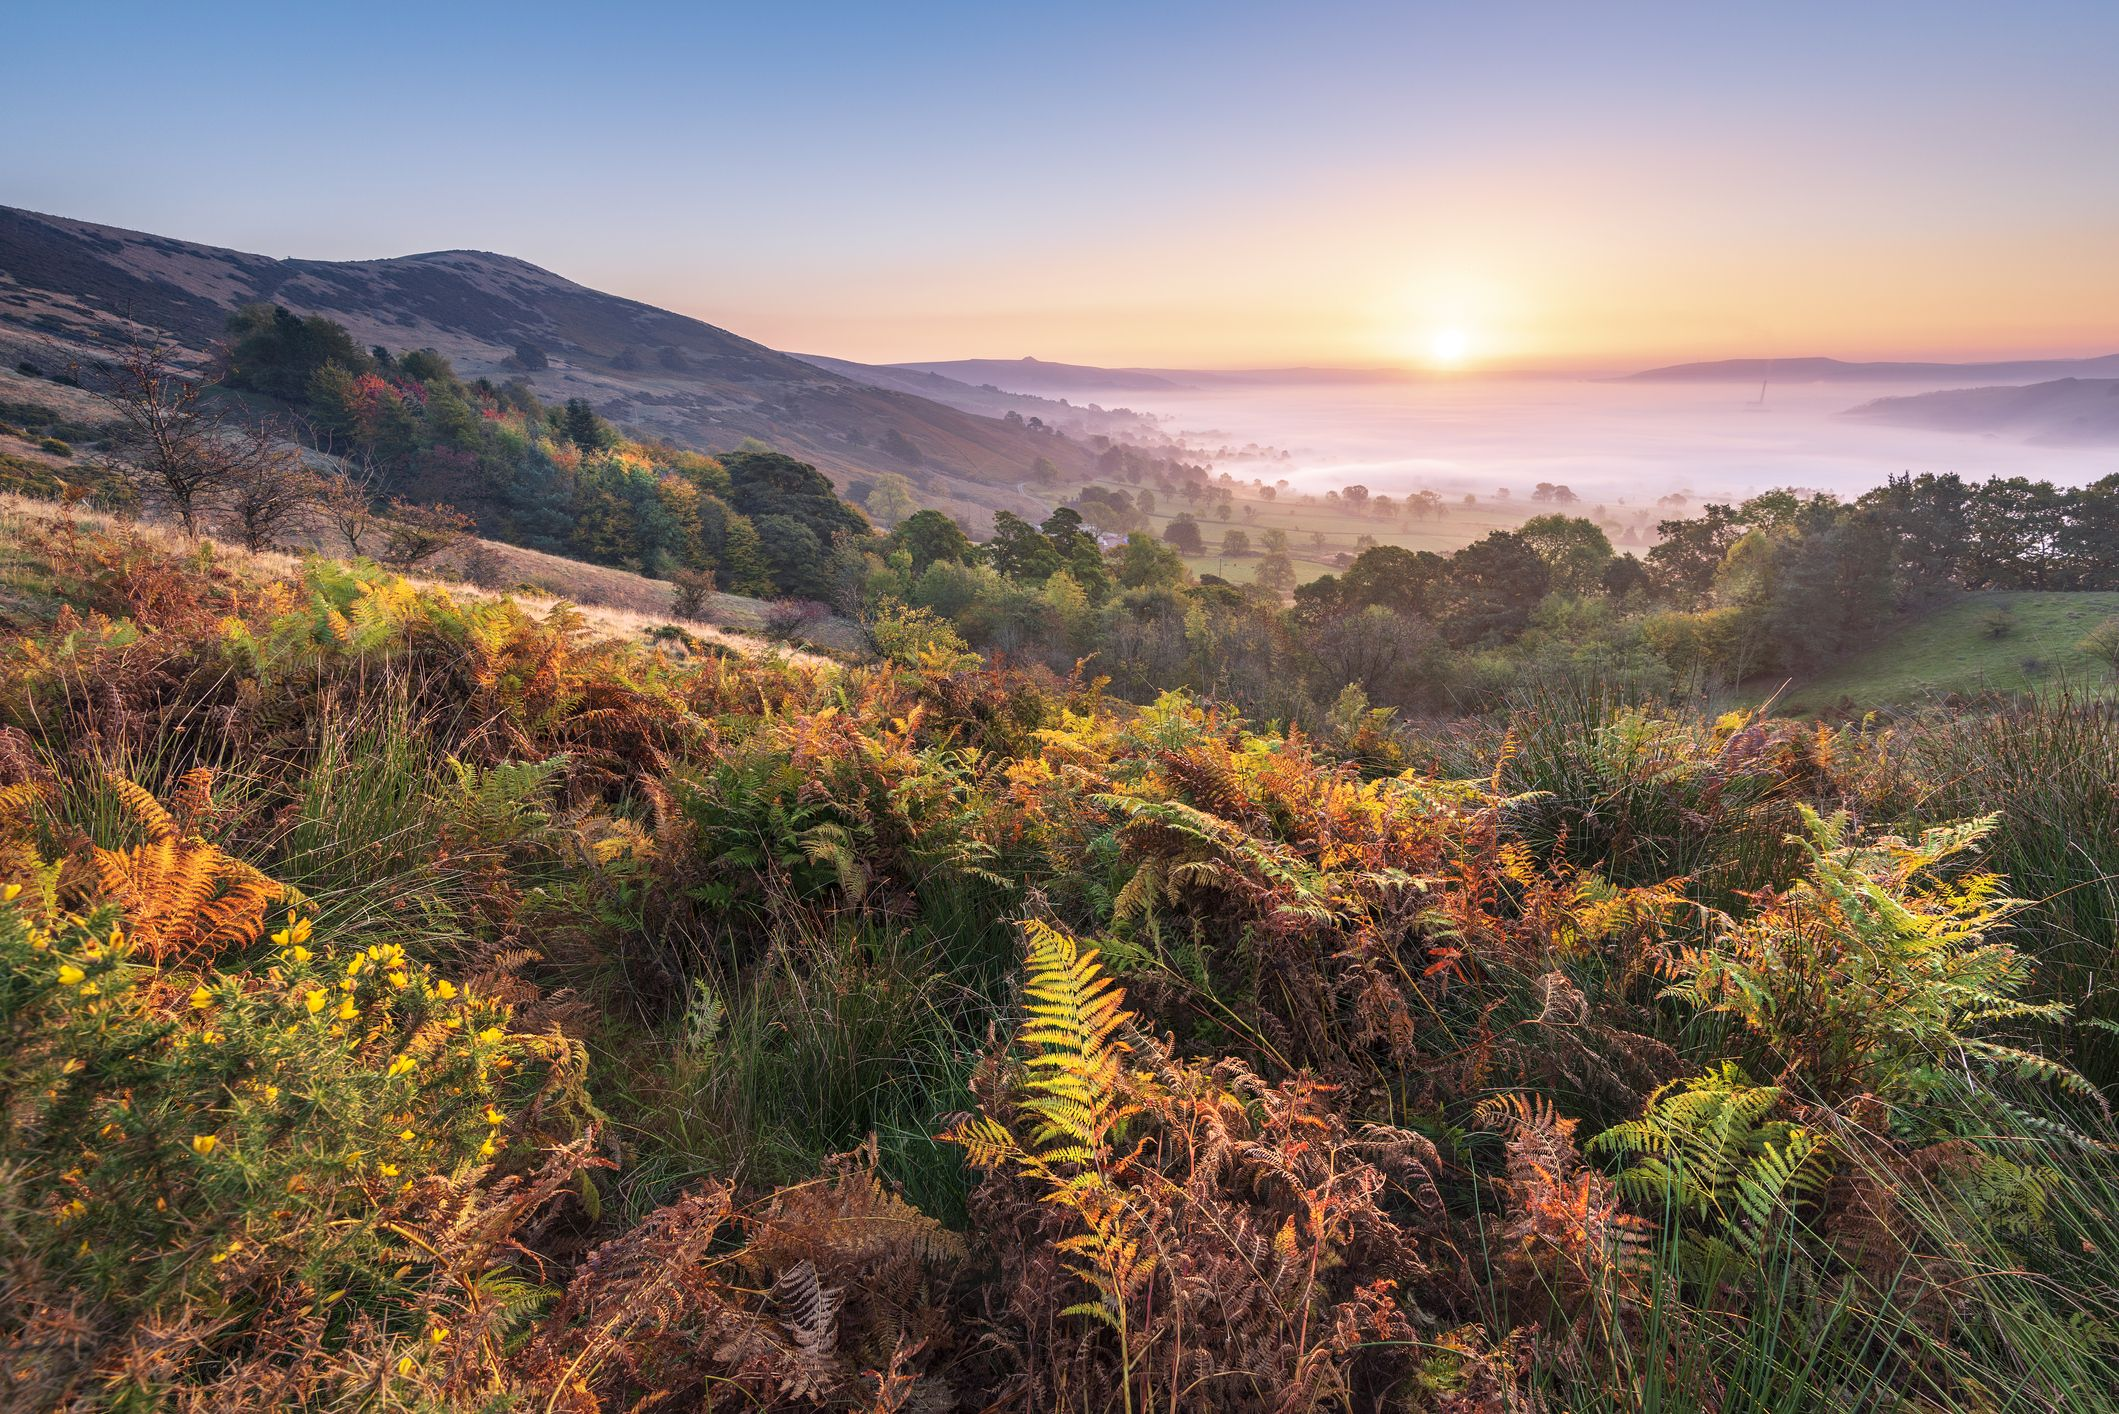 Britain set for a very colourful autumn, according to Forestry England